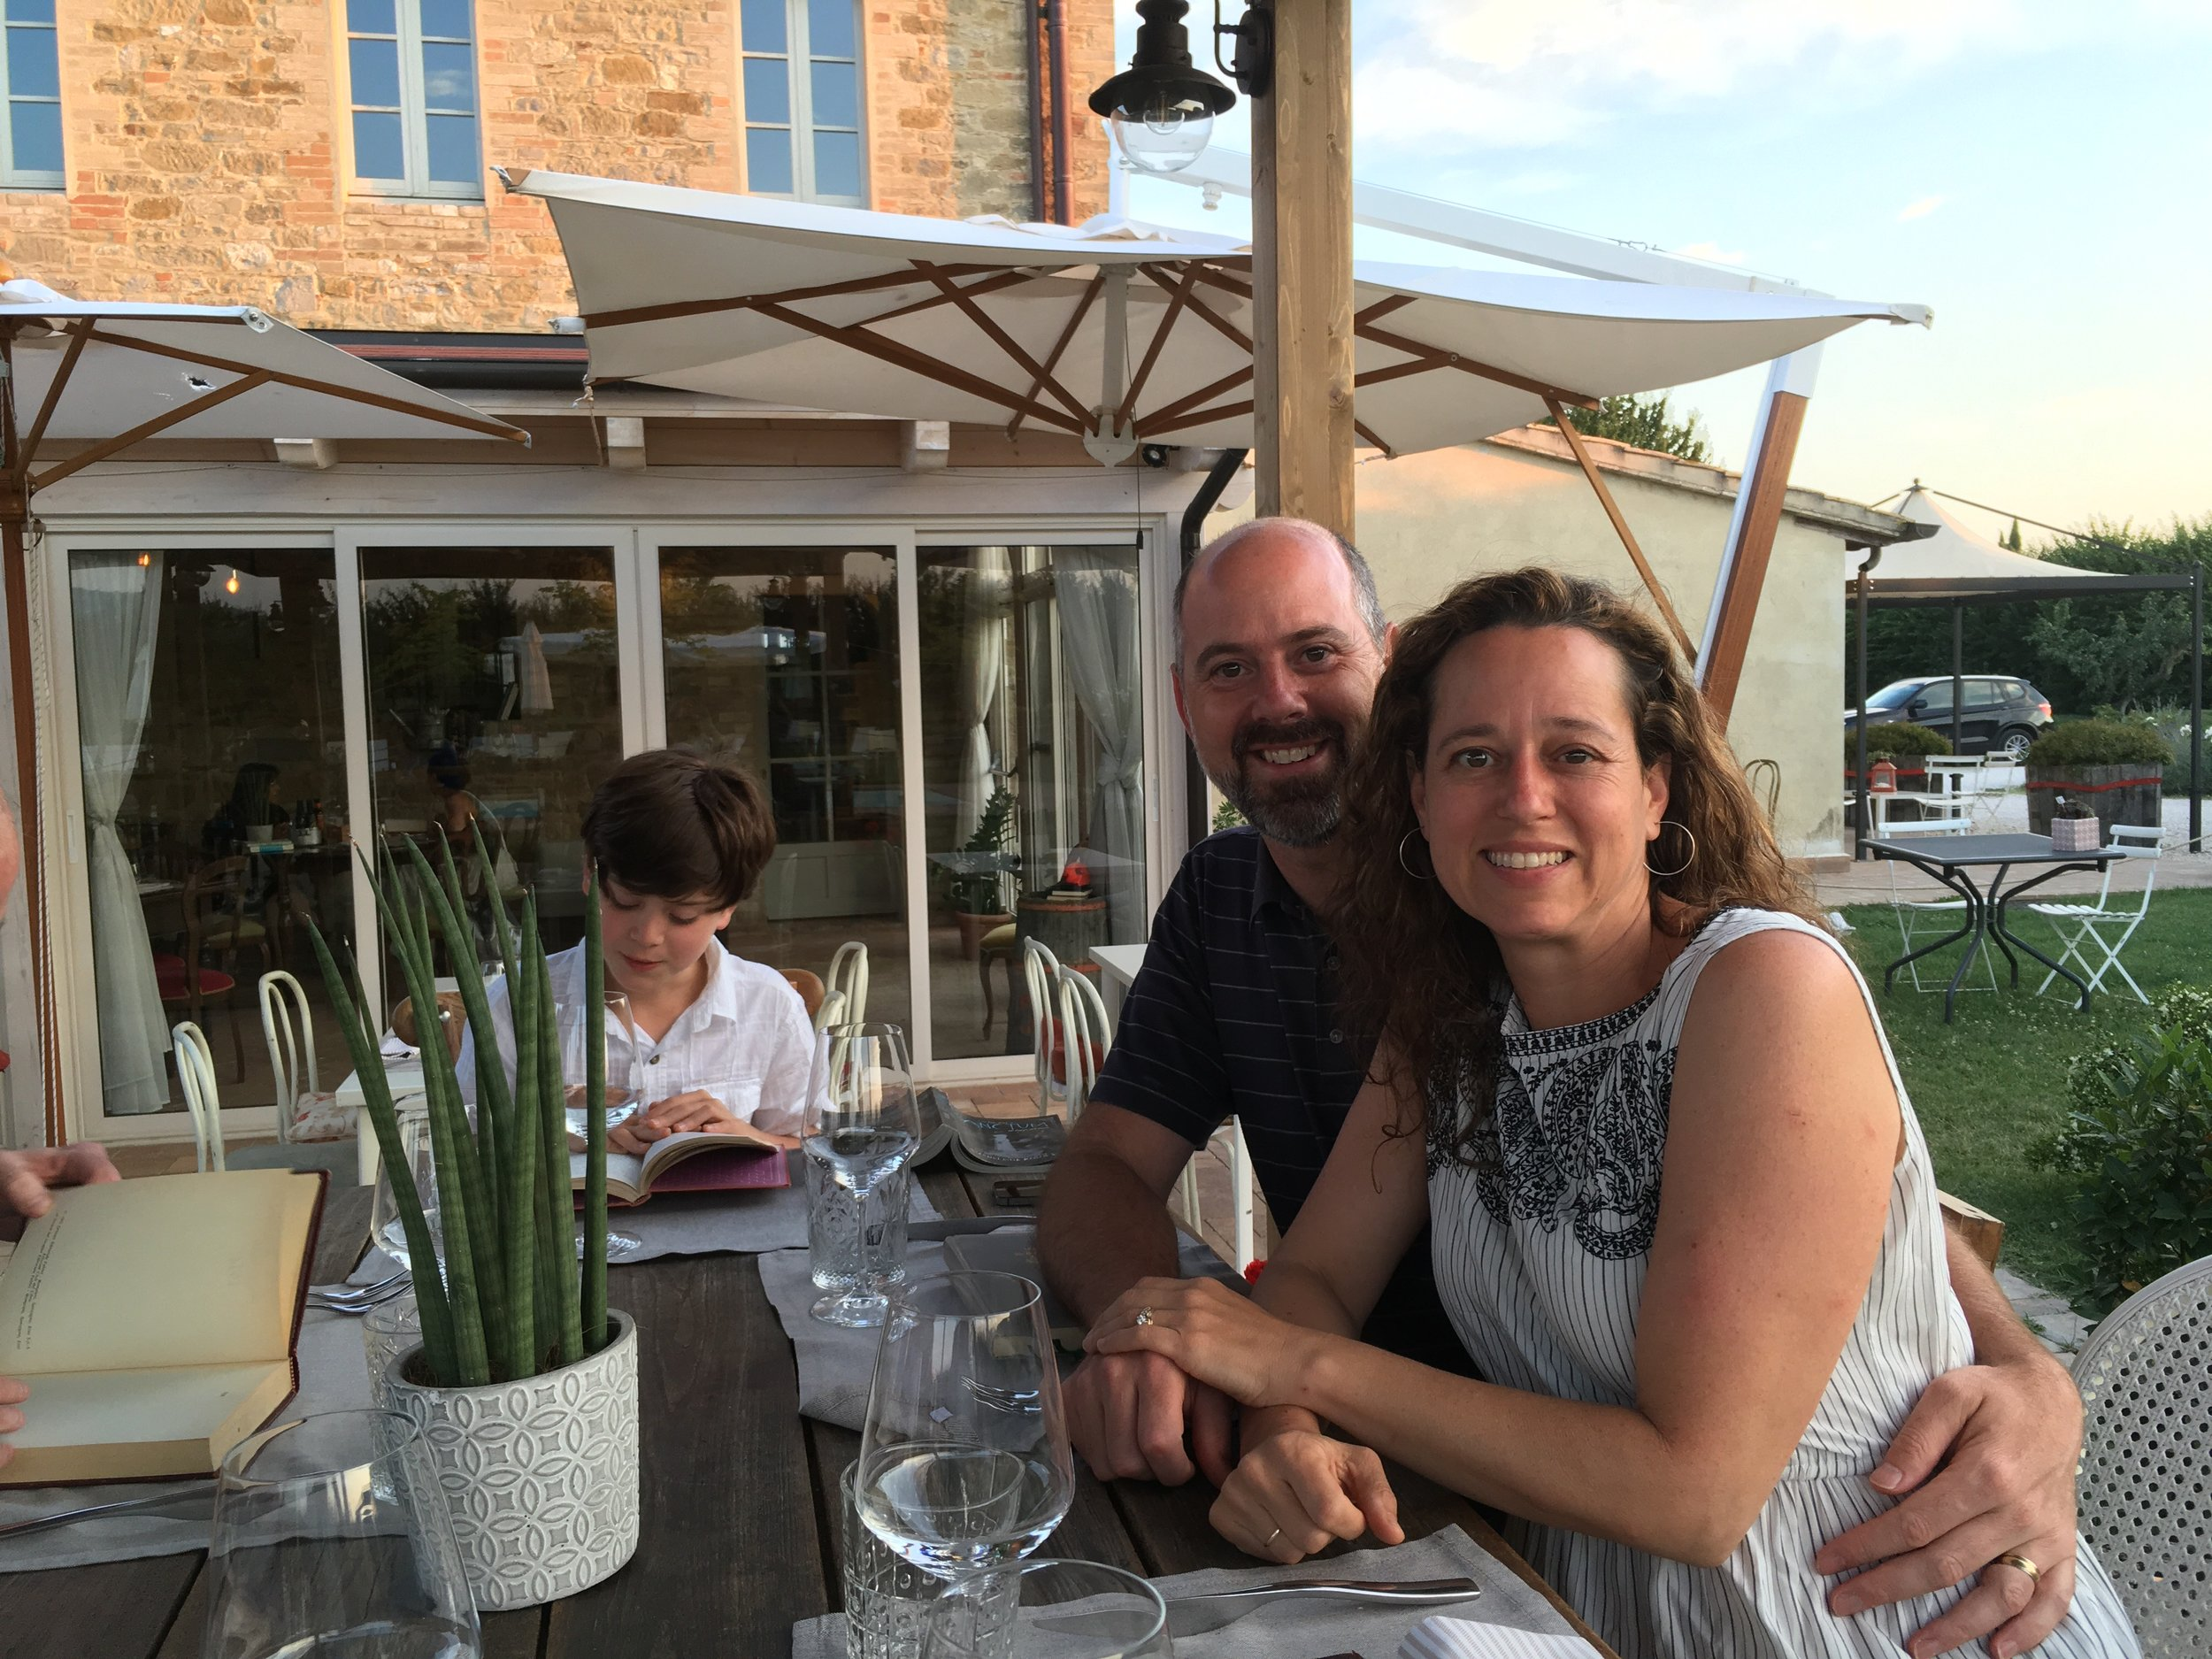 Evening out with Brenda and Graziano